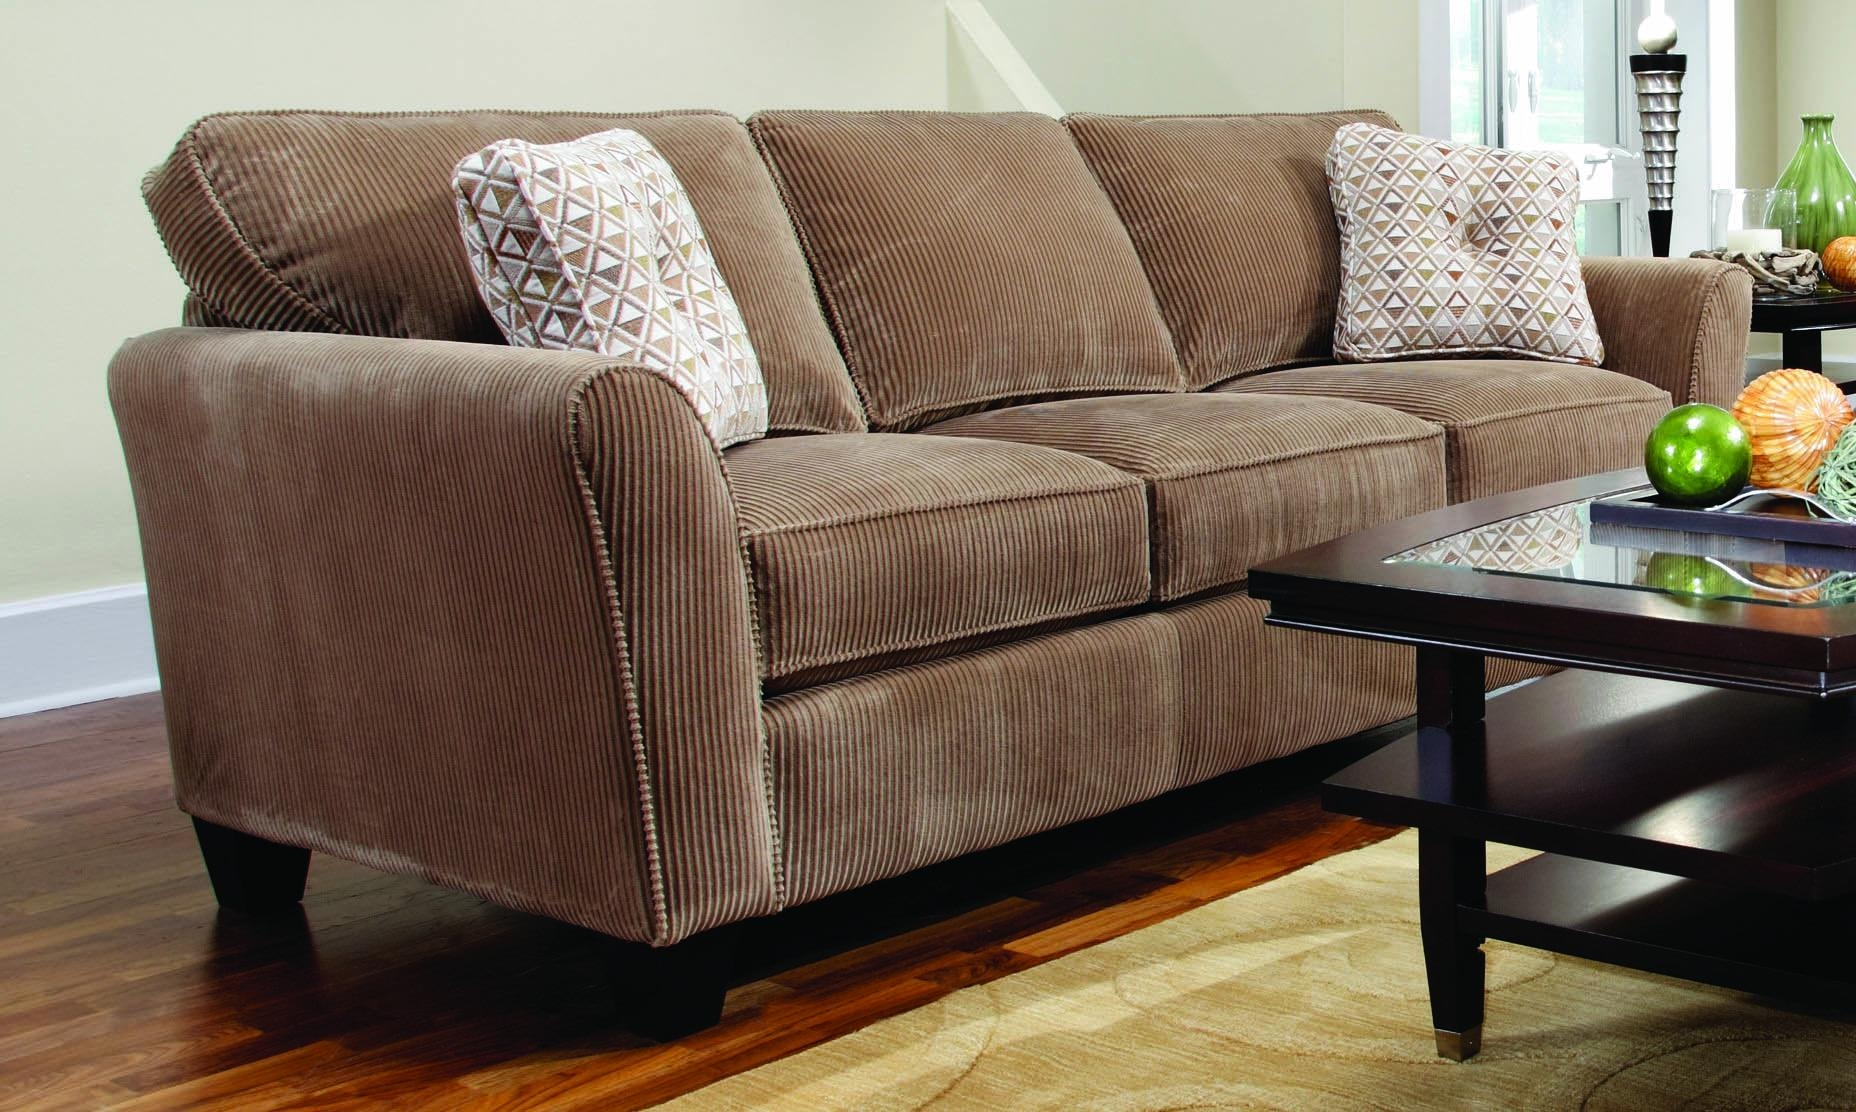 Sofas Center : Broyhilldge Sofa Beigebroyhill Setbroyhill Sleeper Intended For Broyhill Sofas (Image 20 of 20)